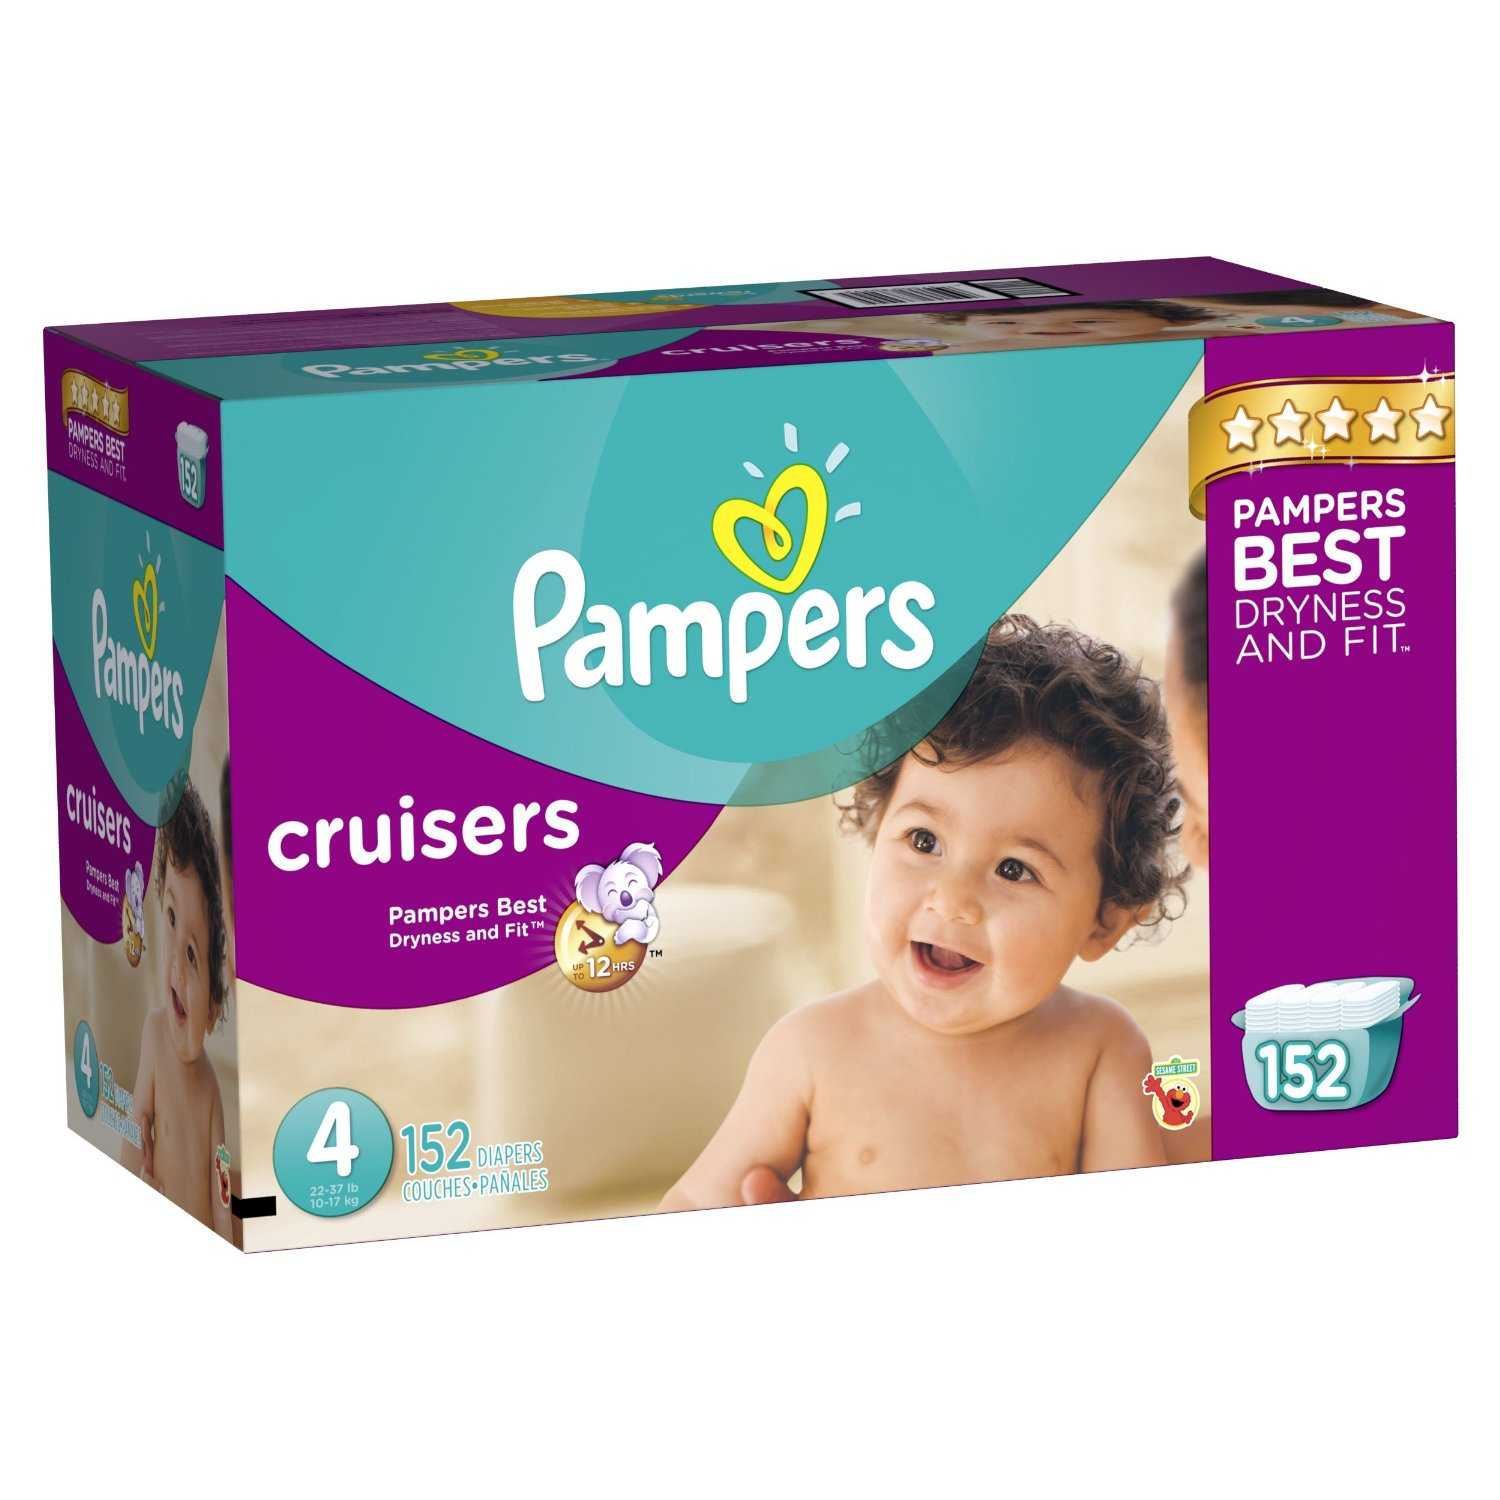 pampers diapers logo - photo #20